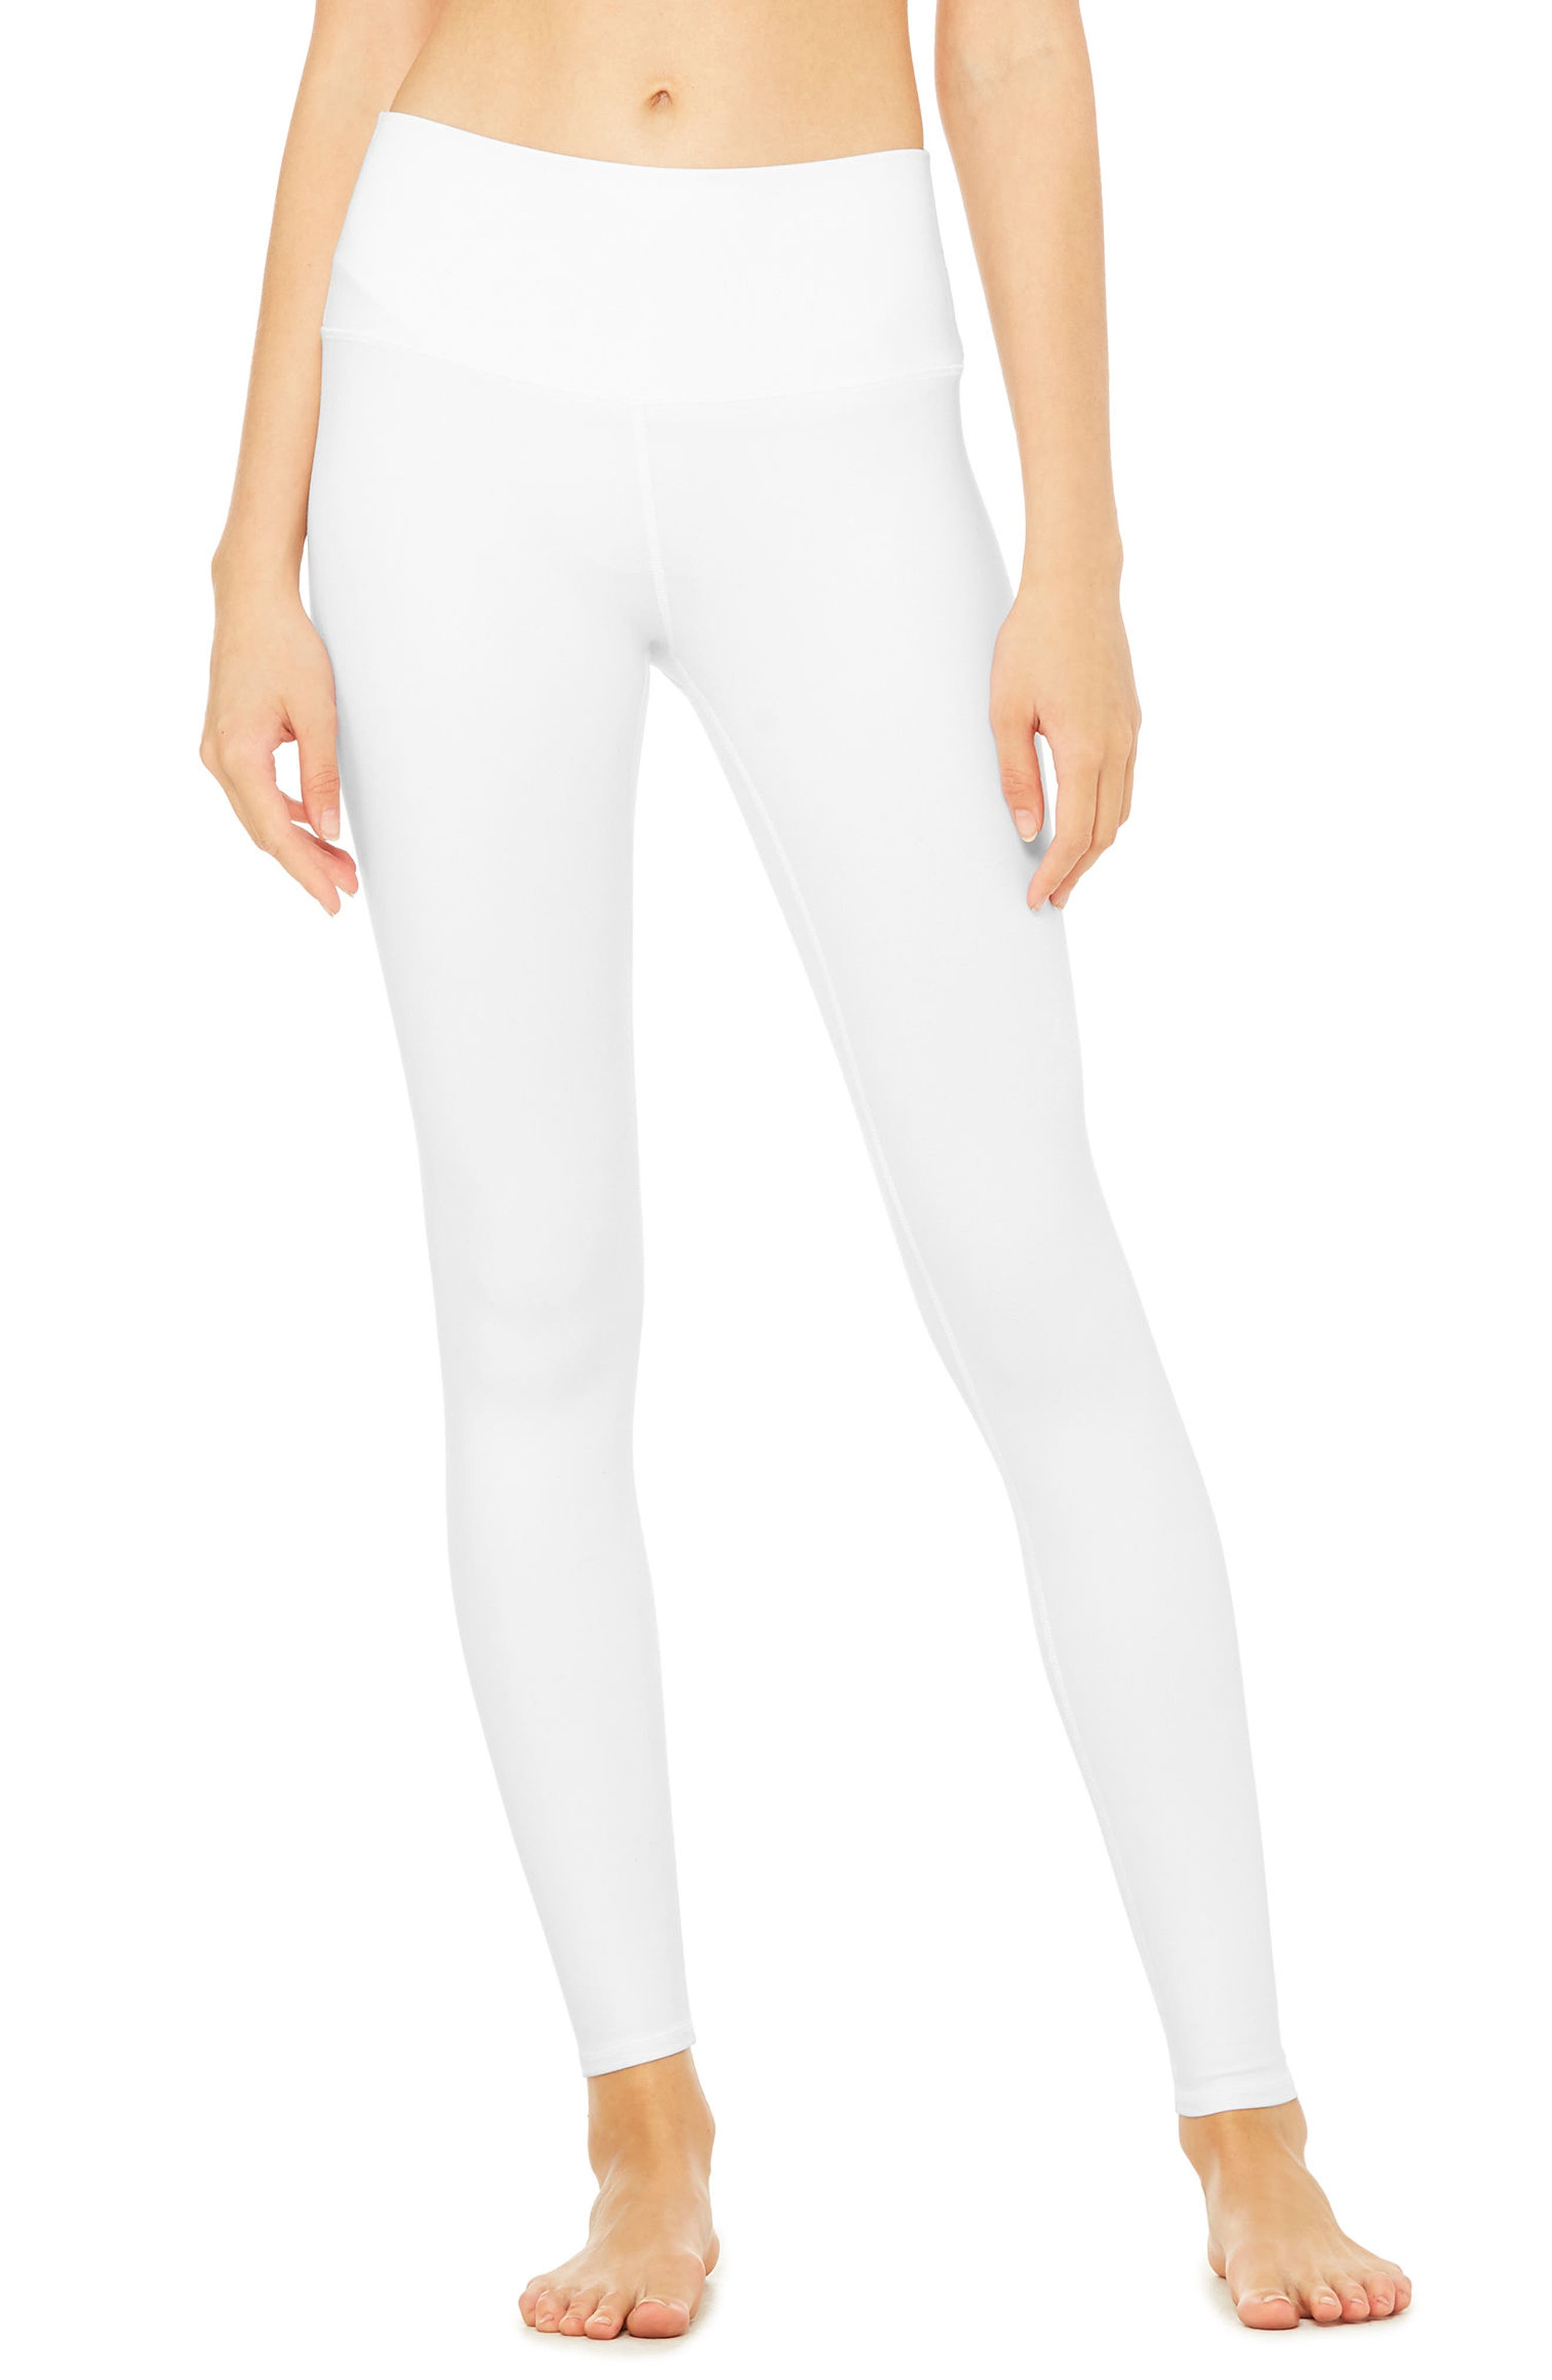 Women's Alo Airbrush High Waist Leggings